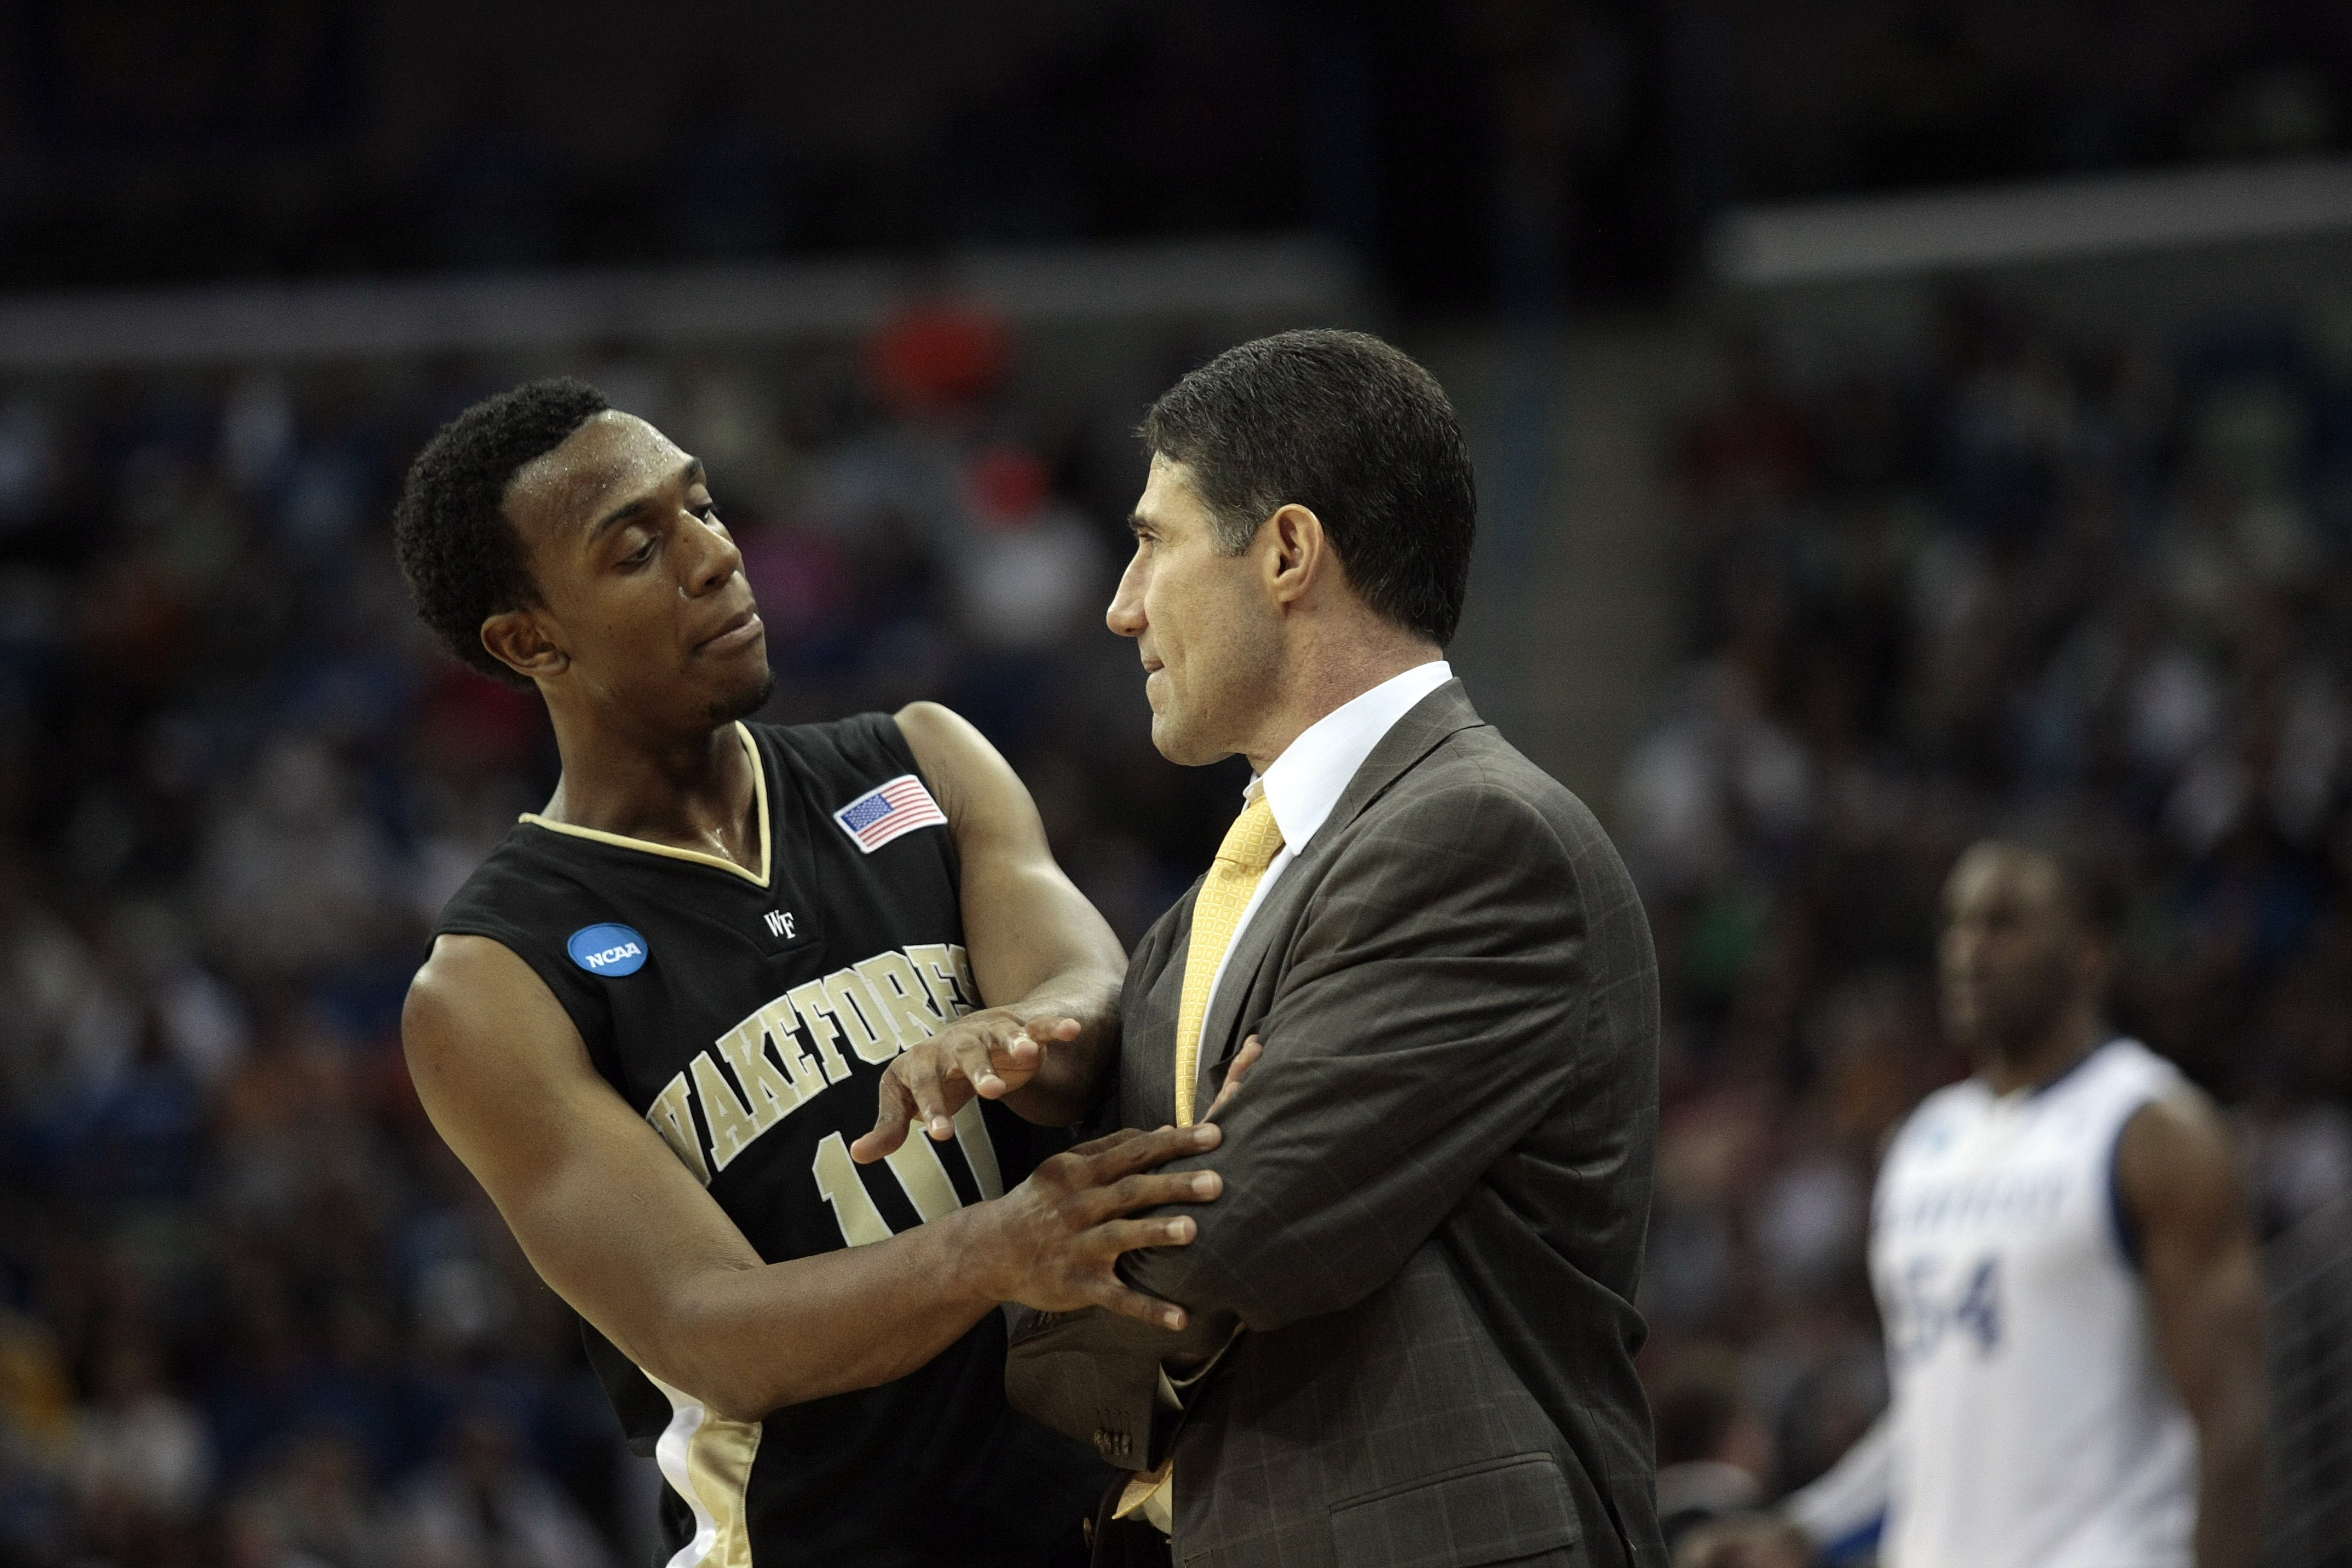 NEW ORLEANS - MARCH 20:  Ishmael Smith #10 talks with coach Dino Gaudio of the Wake Forest Deacon Demons during the second round of the 2010 NCAA mens basketball tournament at the New Orleans Arena on March 20, 2010 in New Orleans, Louisiana.  (Photo by D